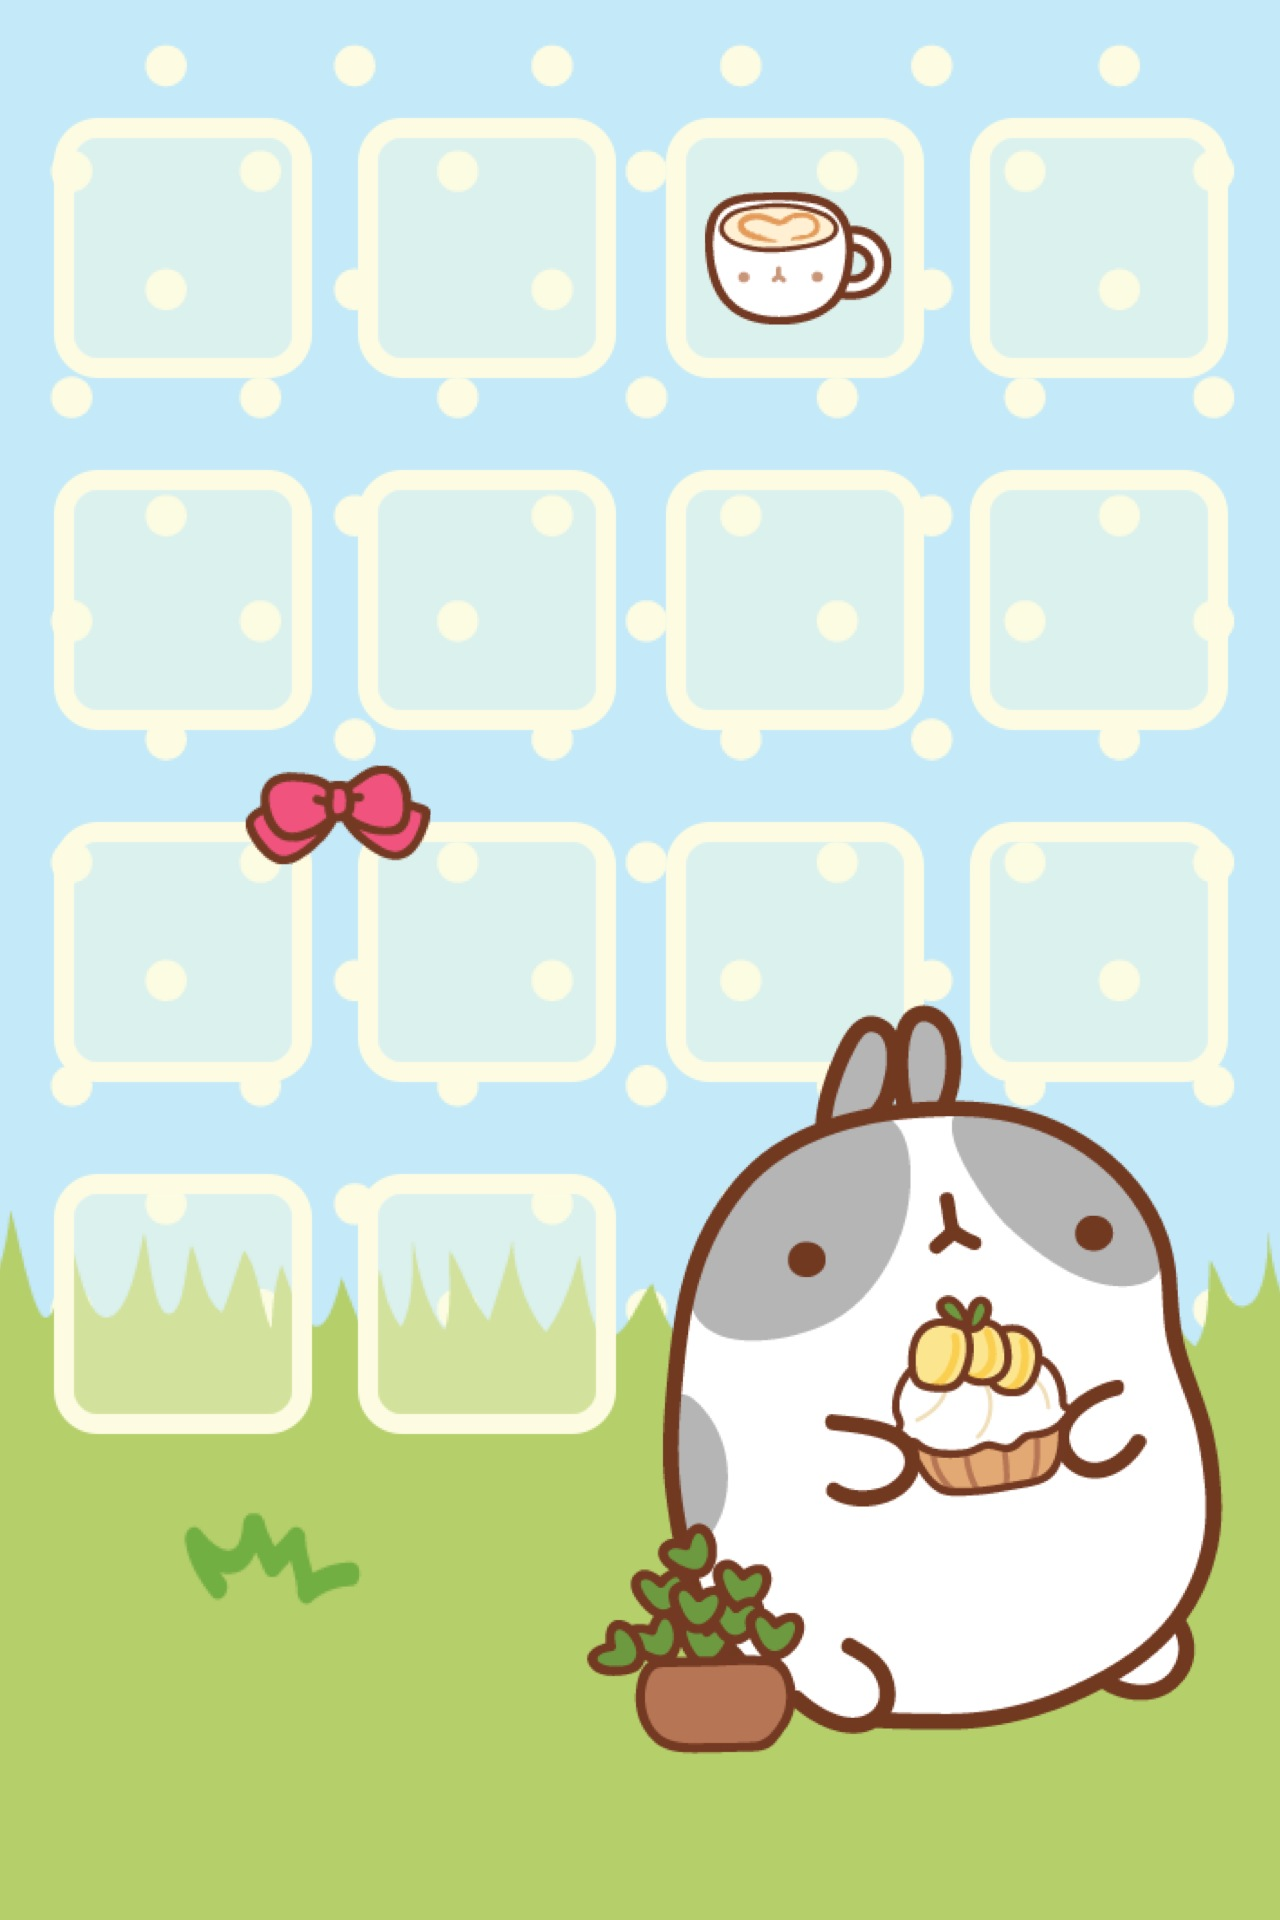 cute kawaii iphone wallpaper - photo #27